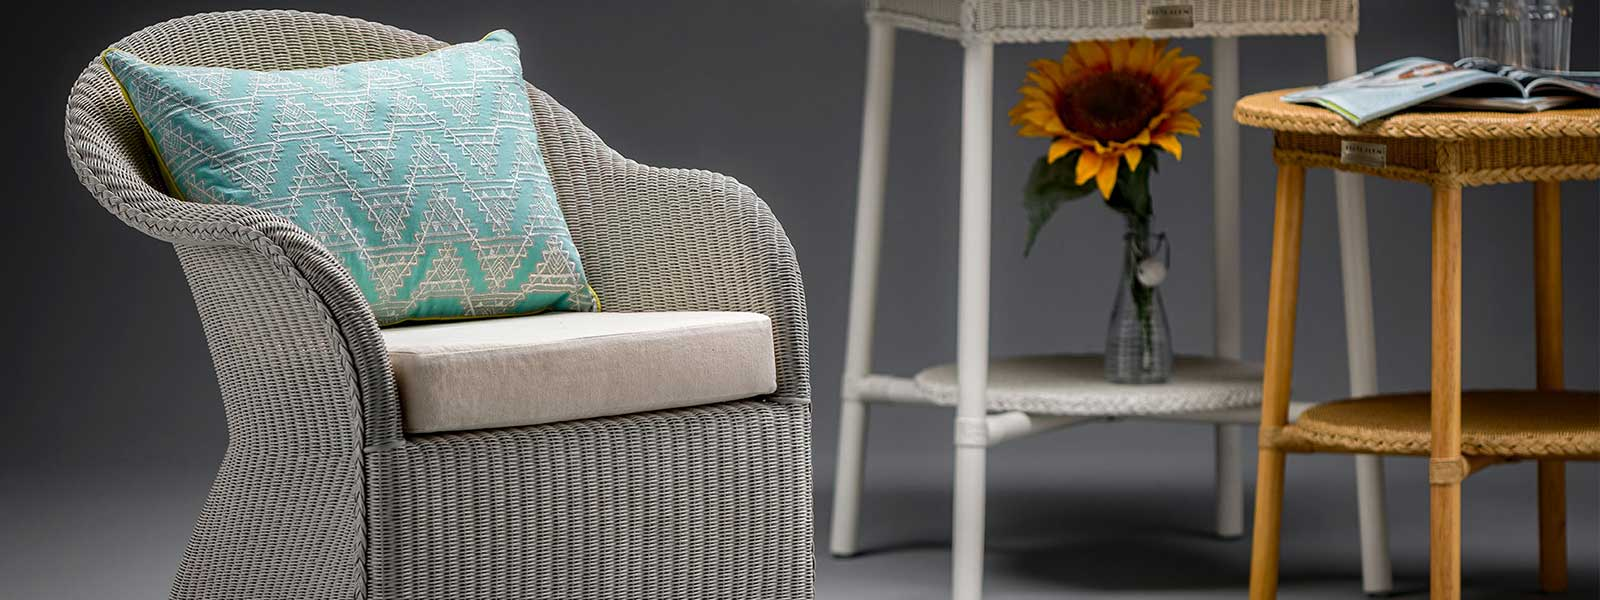 Lloyd Loom Chairs and Furniture - Homepage mobile picture